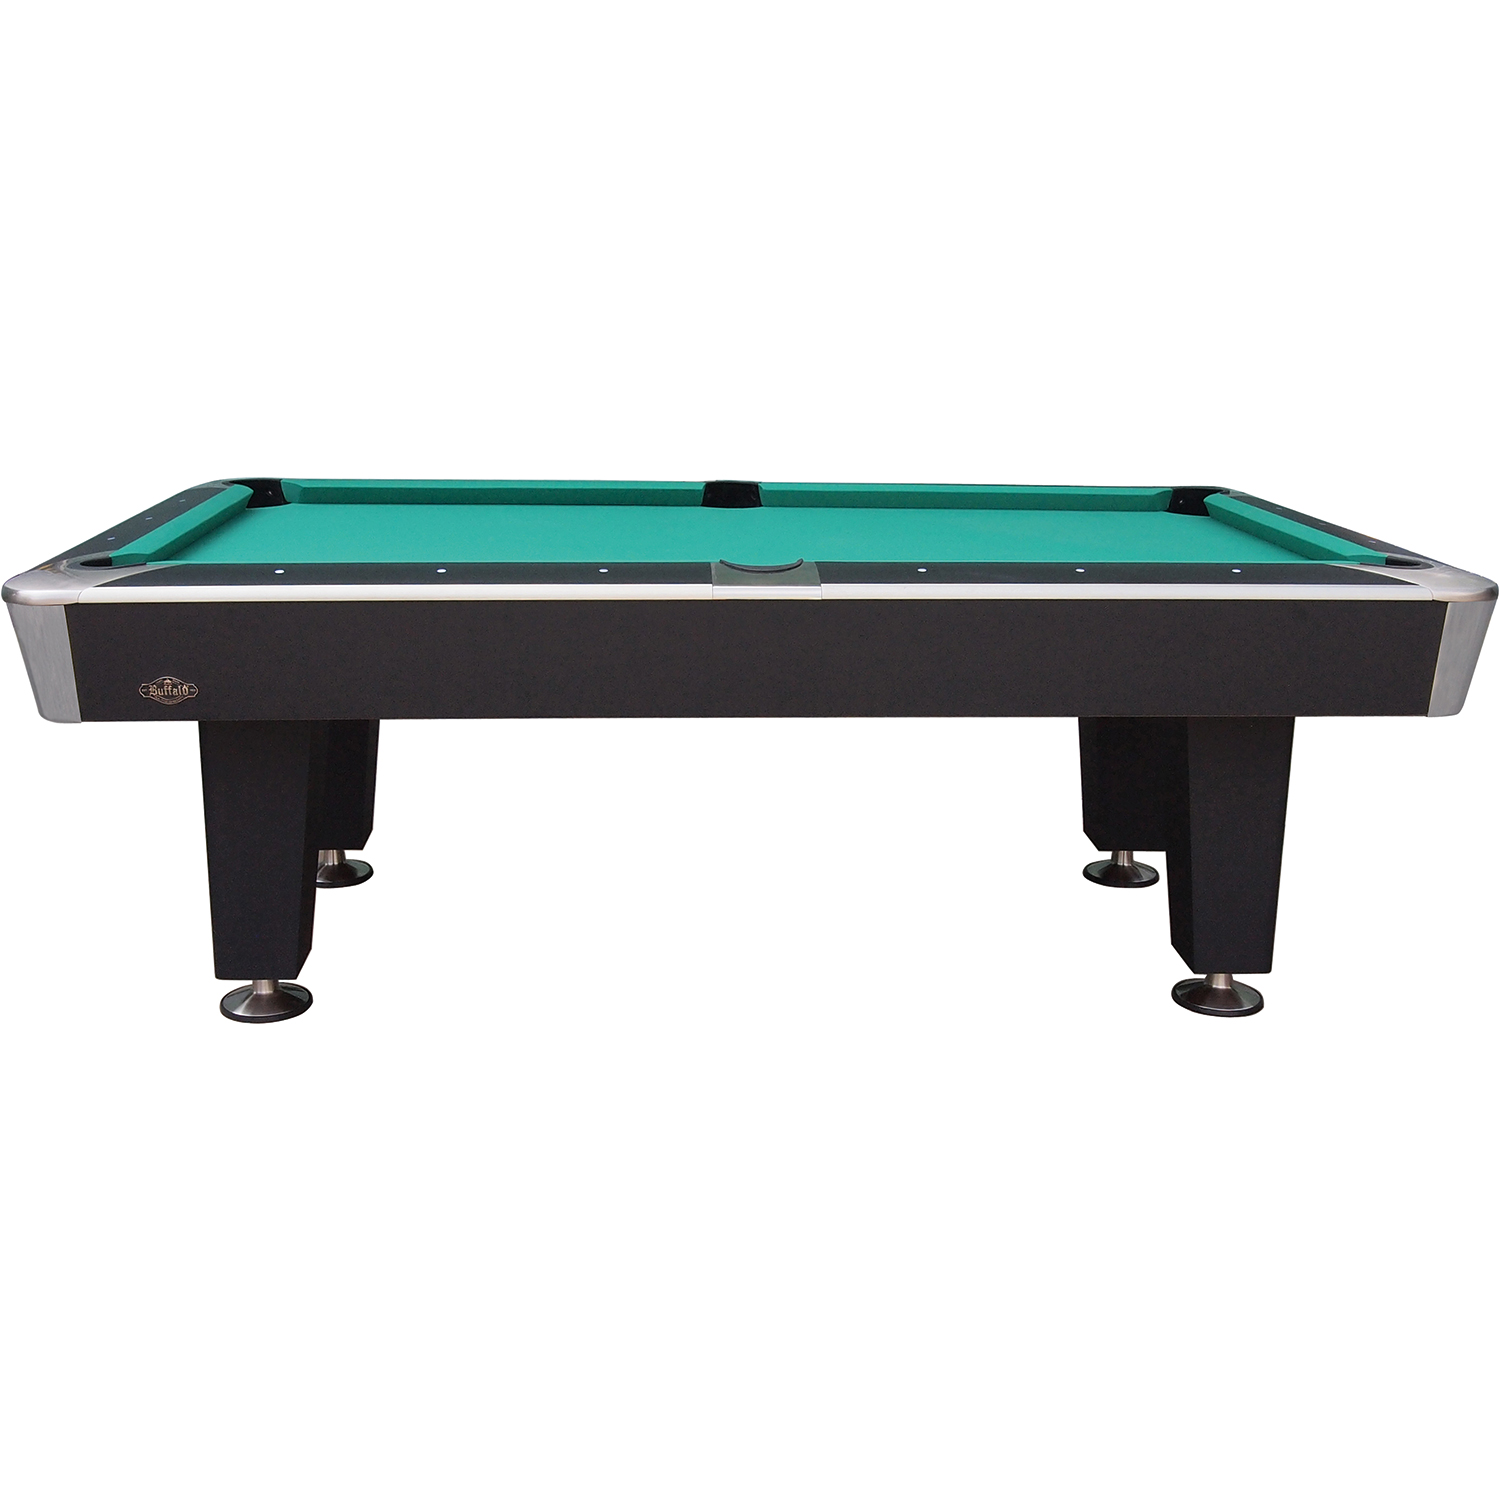 An image of Buffalo Outrage American Pool Table - 7ft |